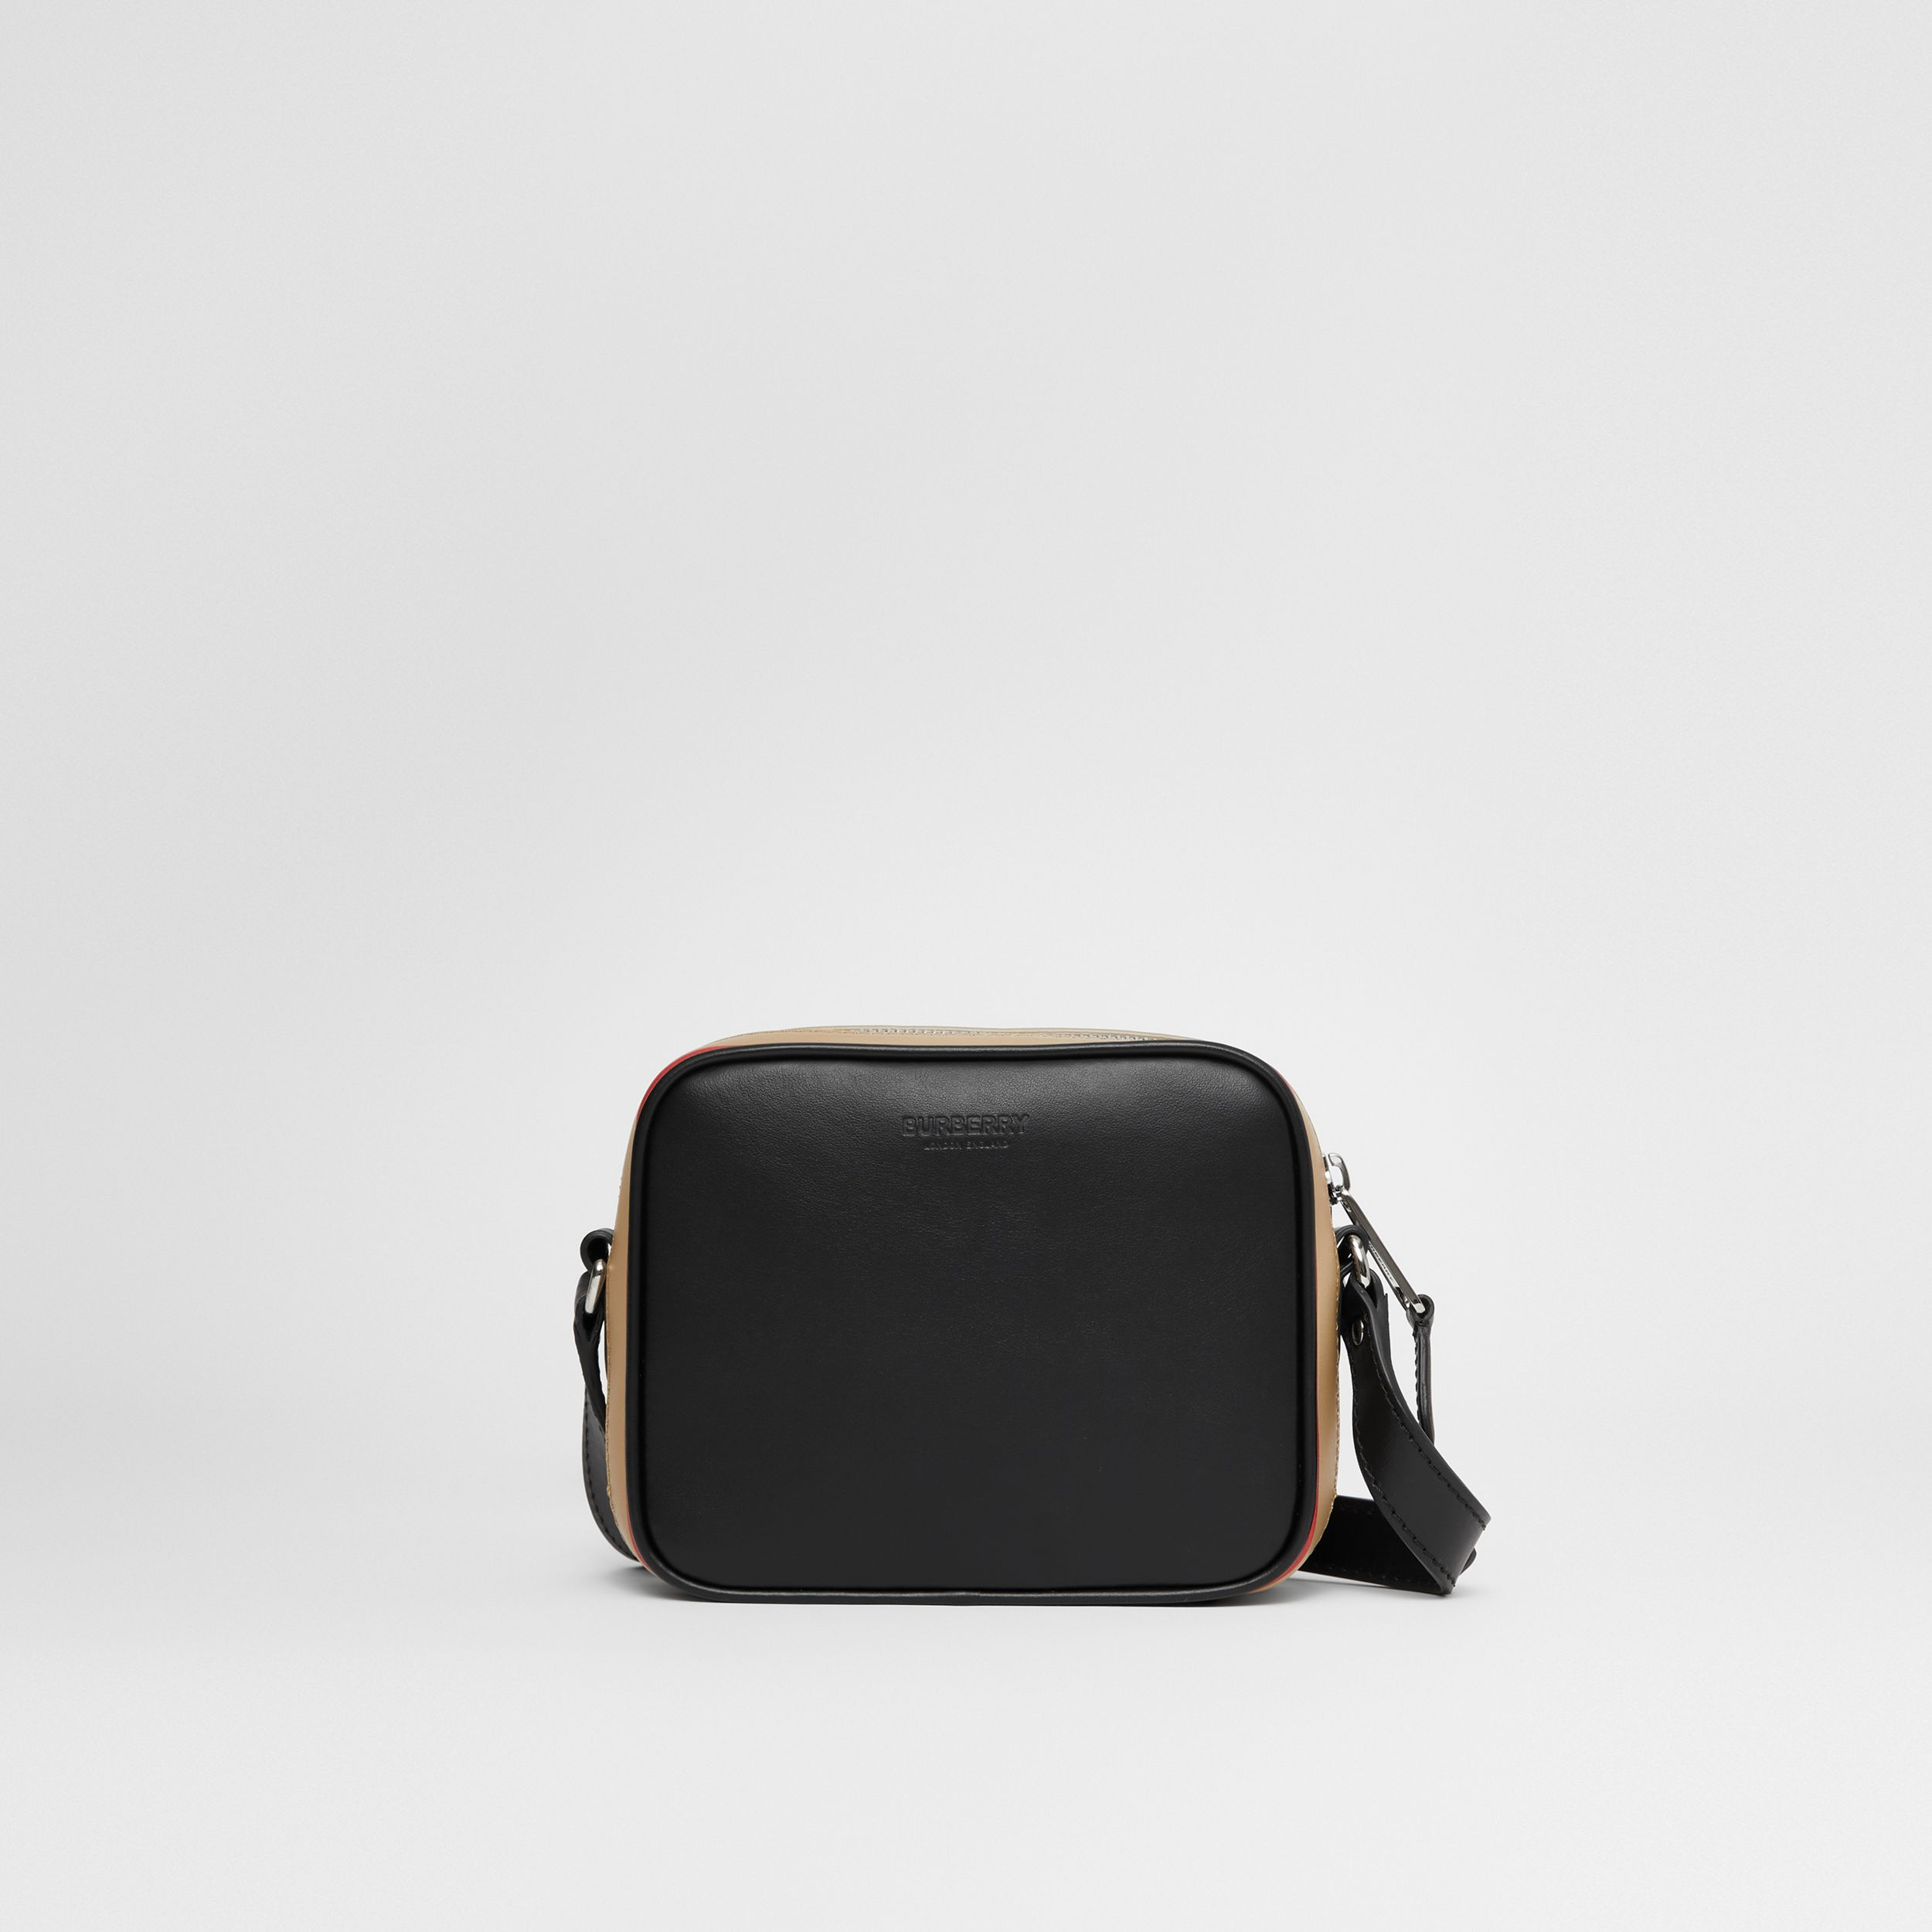 Icon Stripe Print Leather Crossbody Bag in Black | Burberry - 1